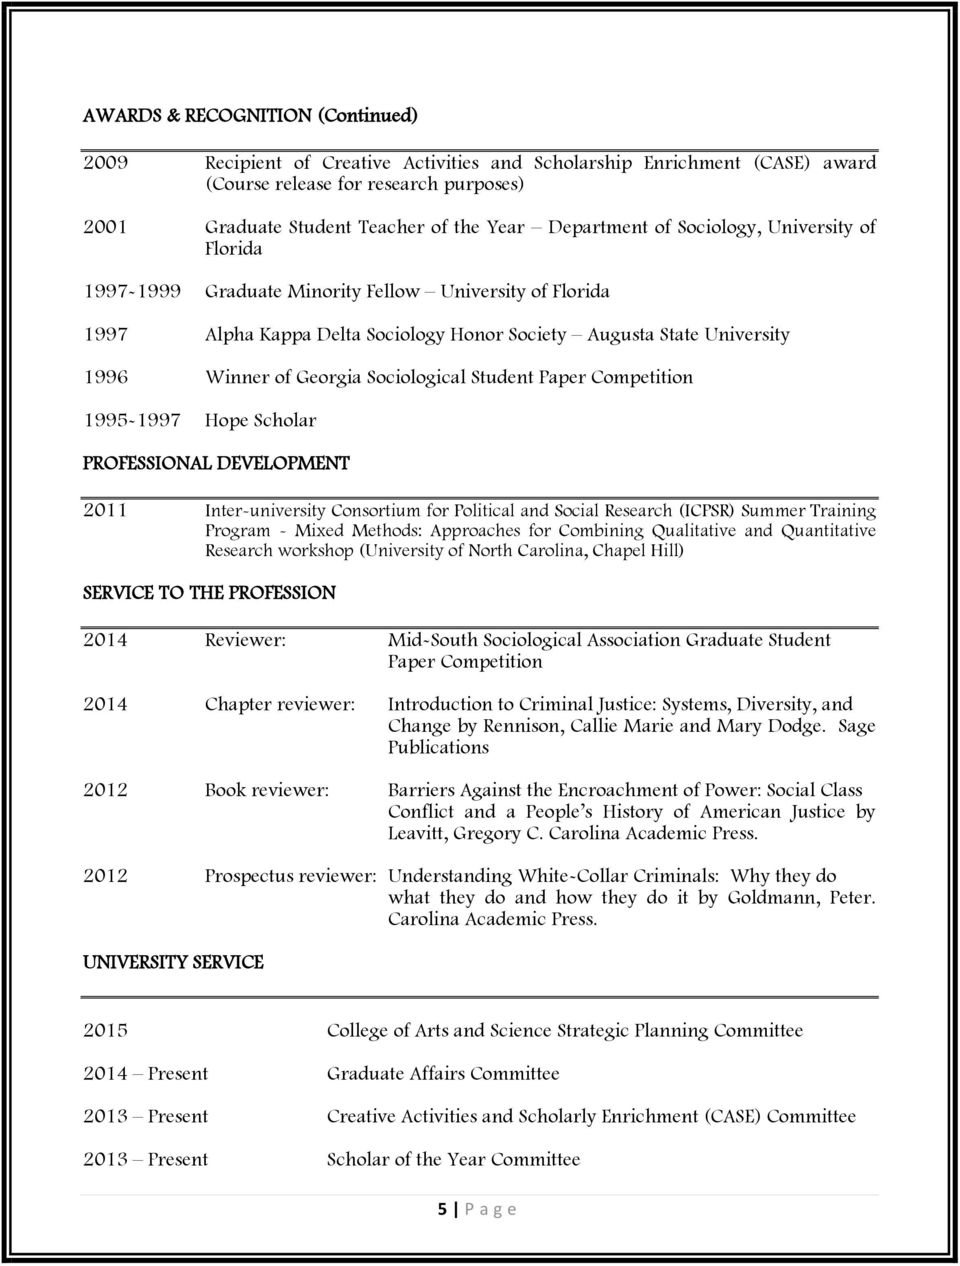 Paper Competition 1995-1997 Hope Scholar PROFESSIONAL DEVELOPMENT 2011 Inter-university Consortium for Political and Social Research (ICPSR) Summer Training Program - Mixed Methods: Approaches for